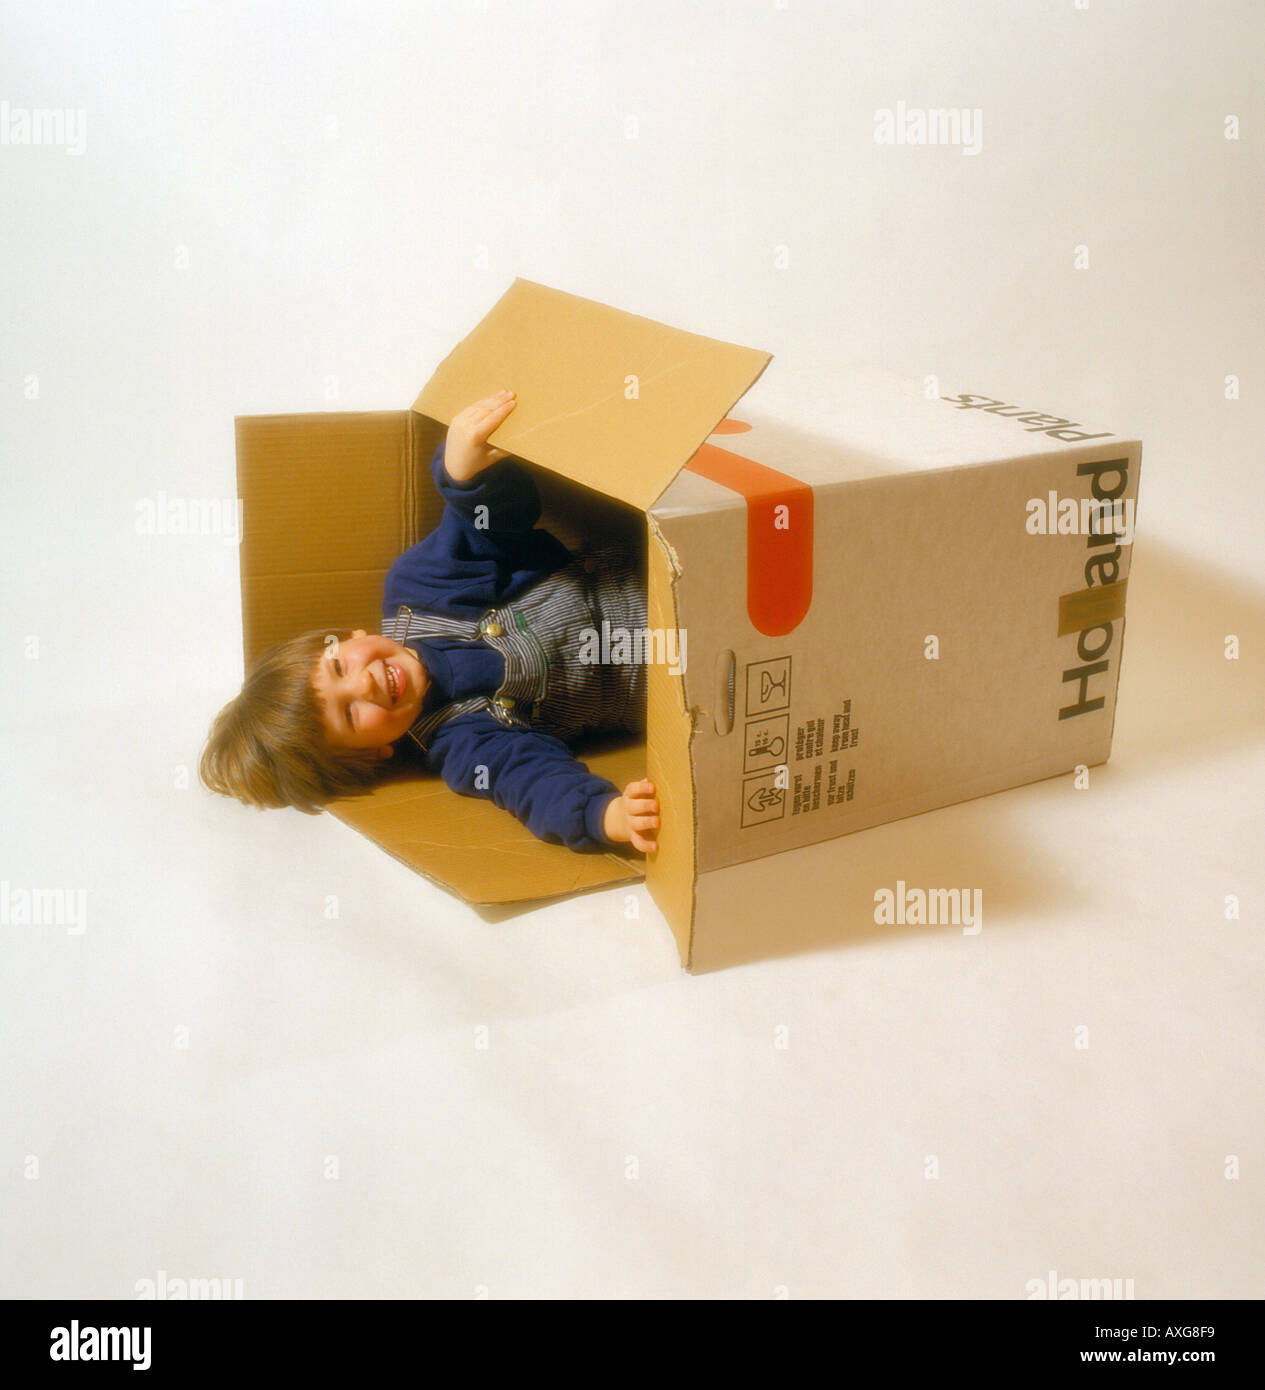 child playing and hiding in a  cardboard box. Photo by Willy Matheisl - Stock Image